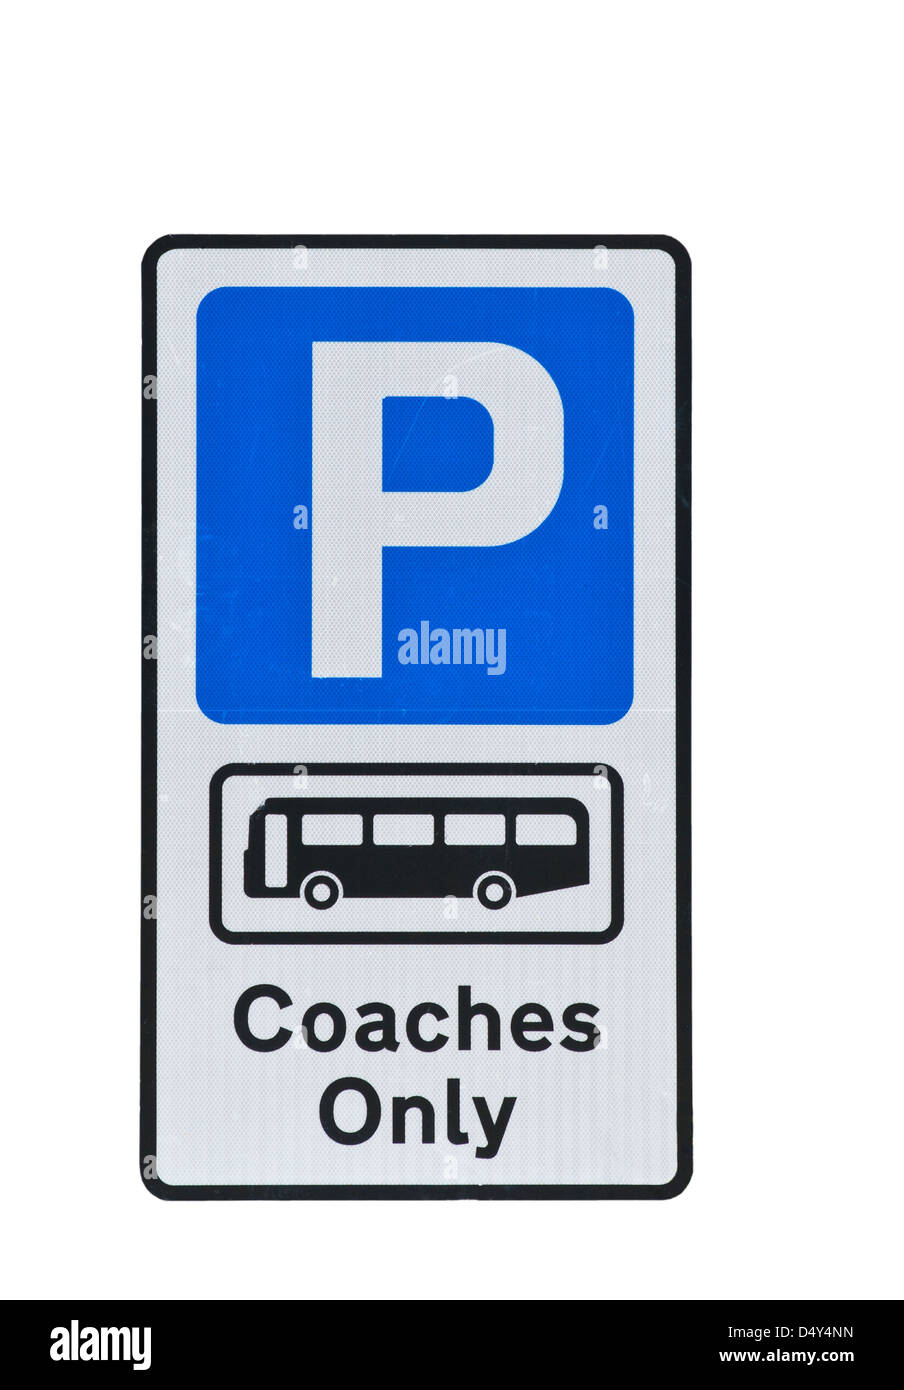 Herefordshire Car Parking